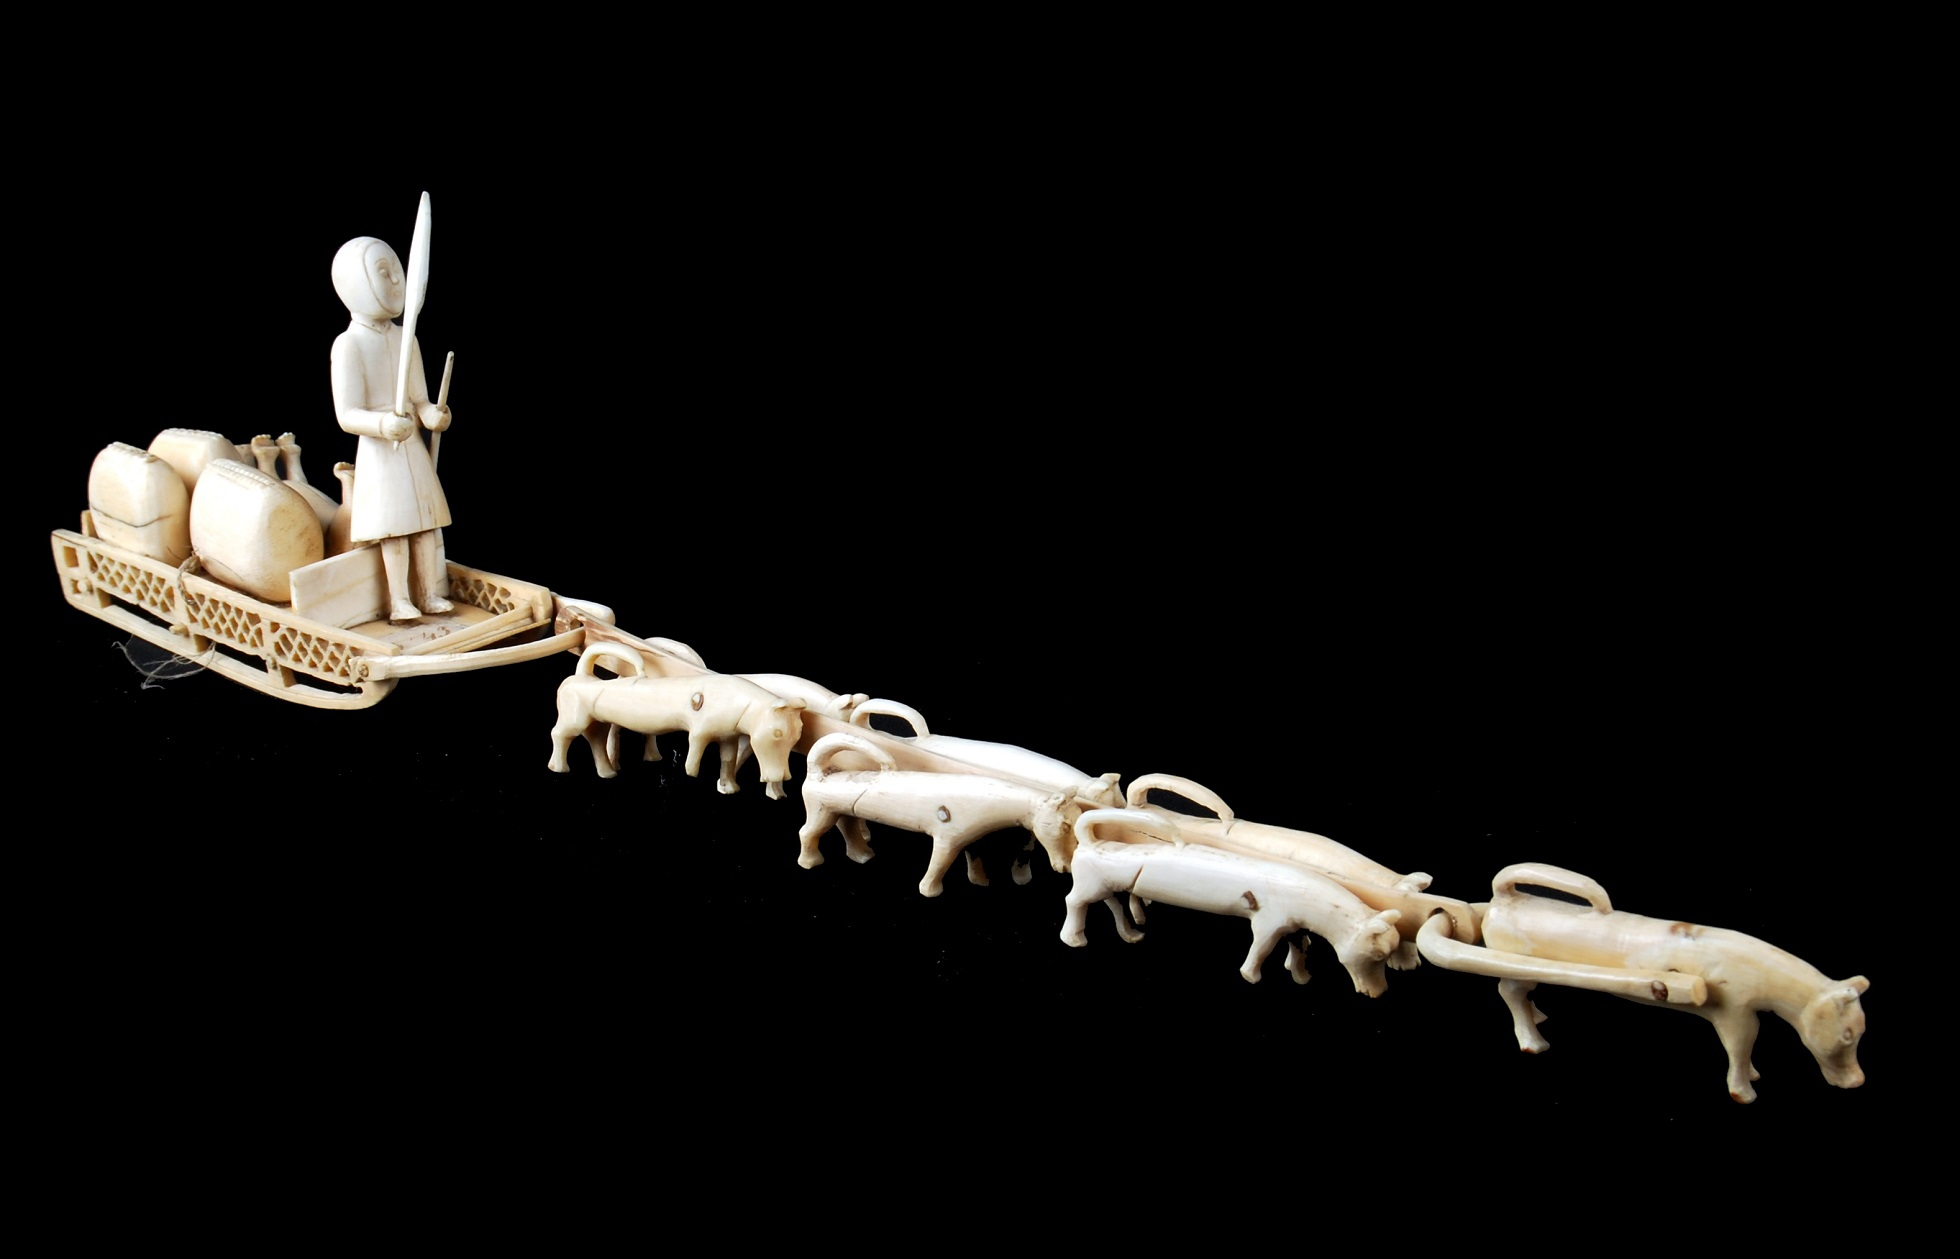 A ivory model which shows a man standing on a sled pulled by seven dogs, which are all harnessed together. On the sled are goods that are being transported as well as a dog who may be injured or dead.